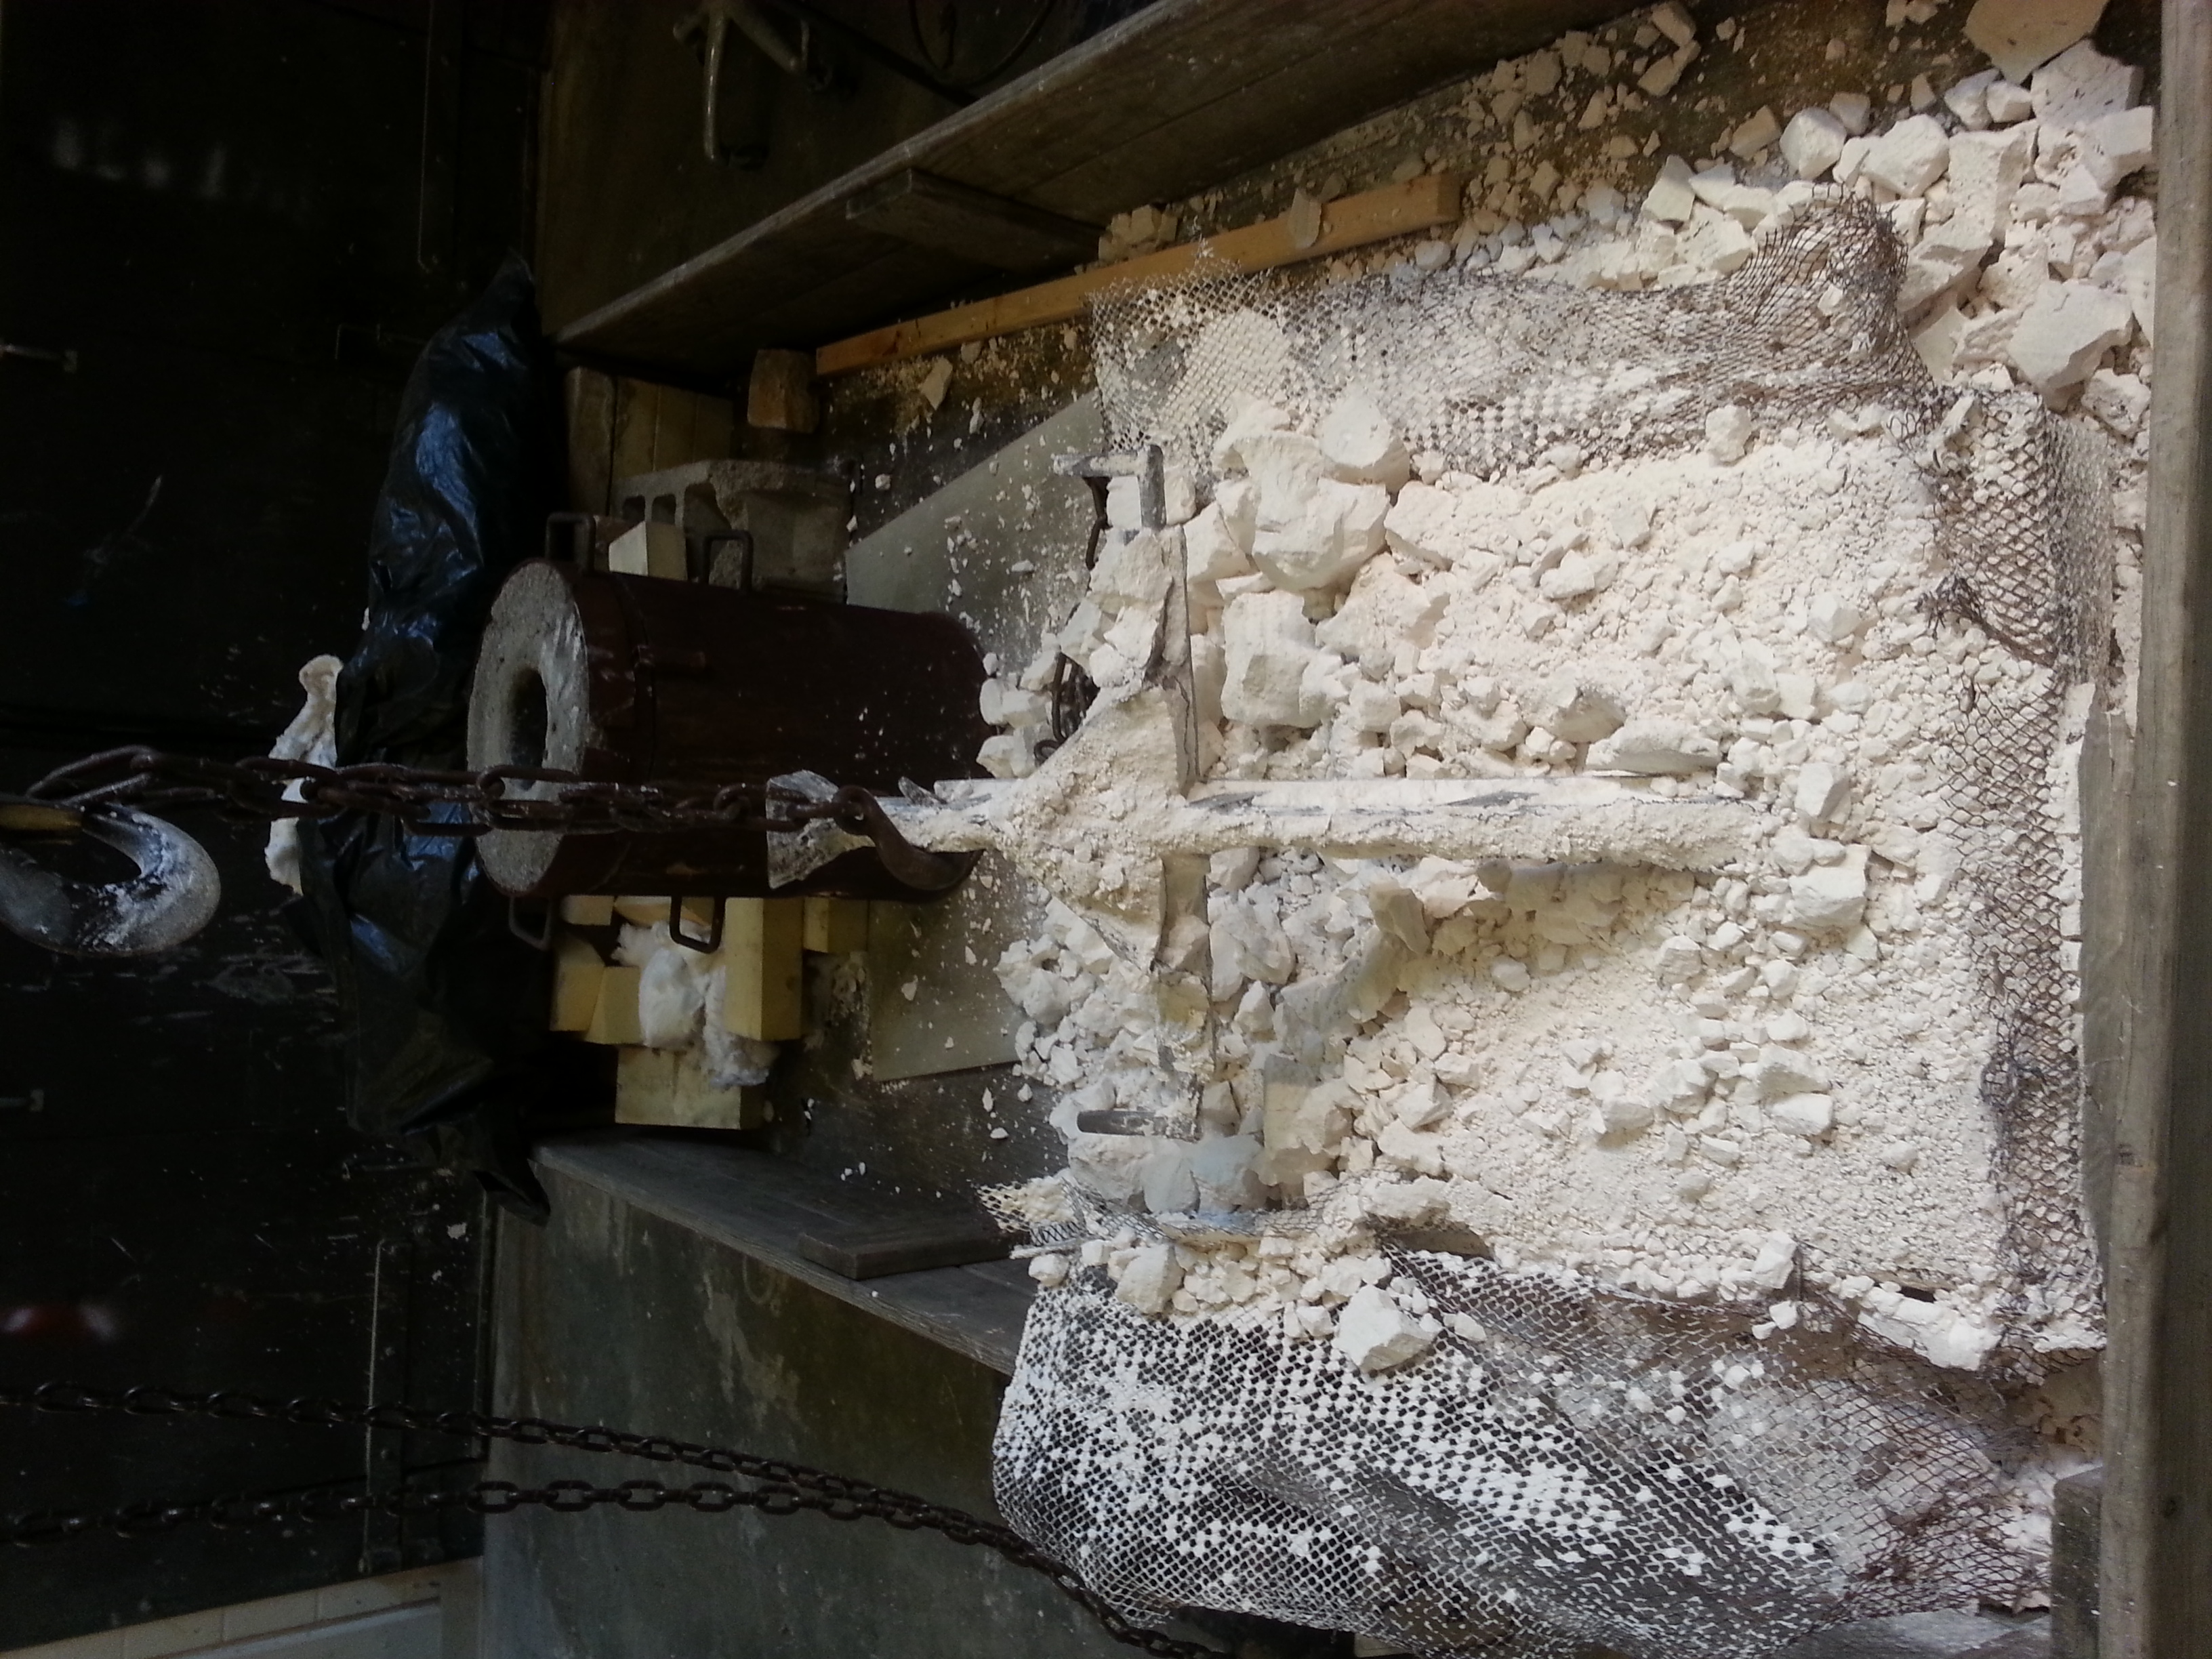 Breaking the casting out of the mold